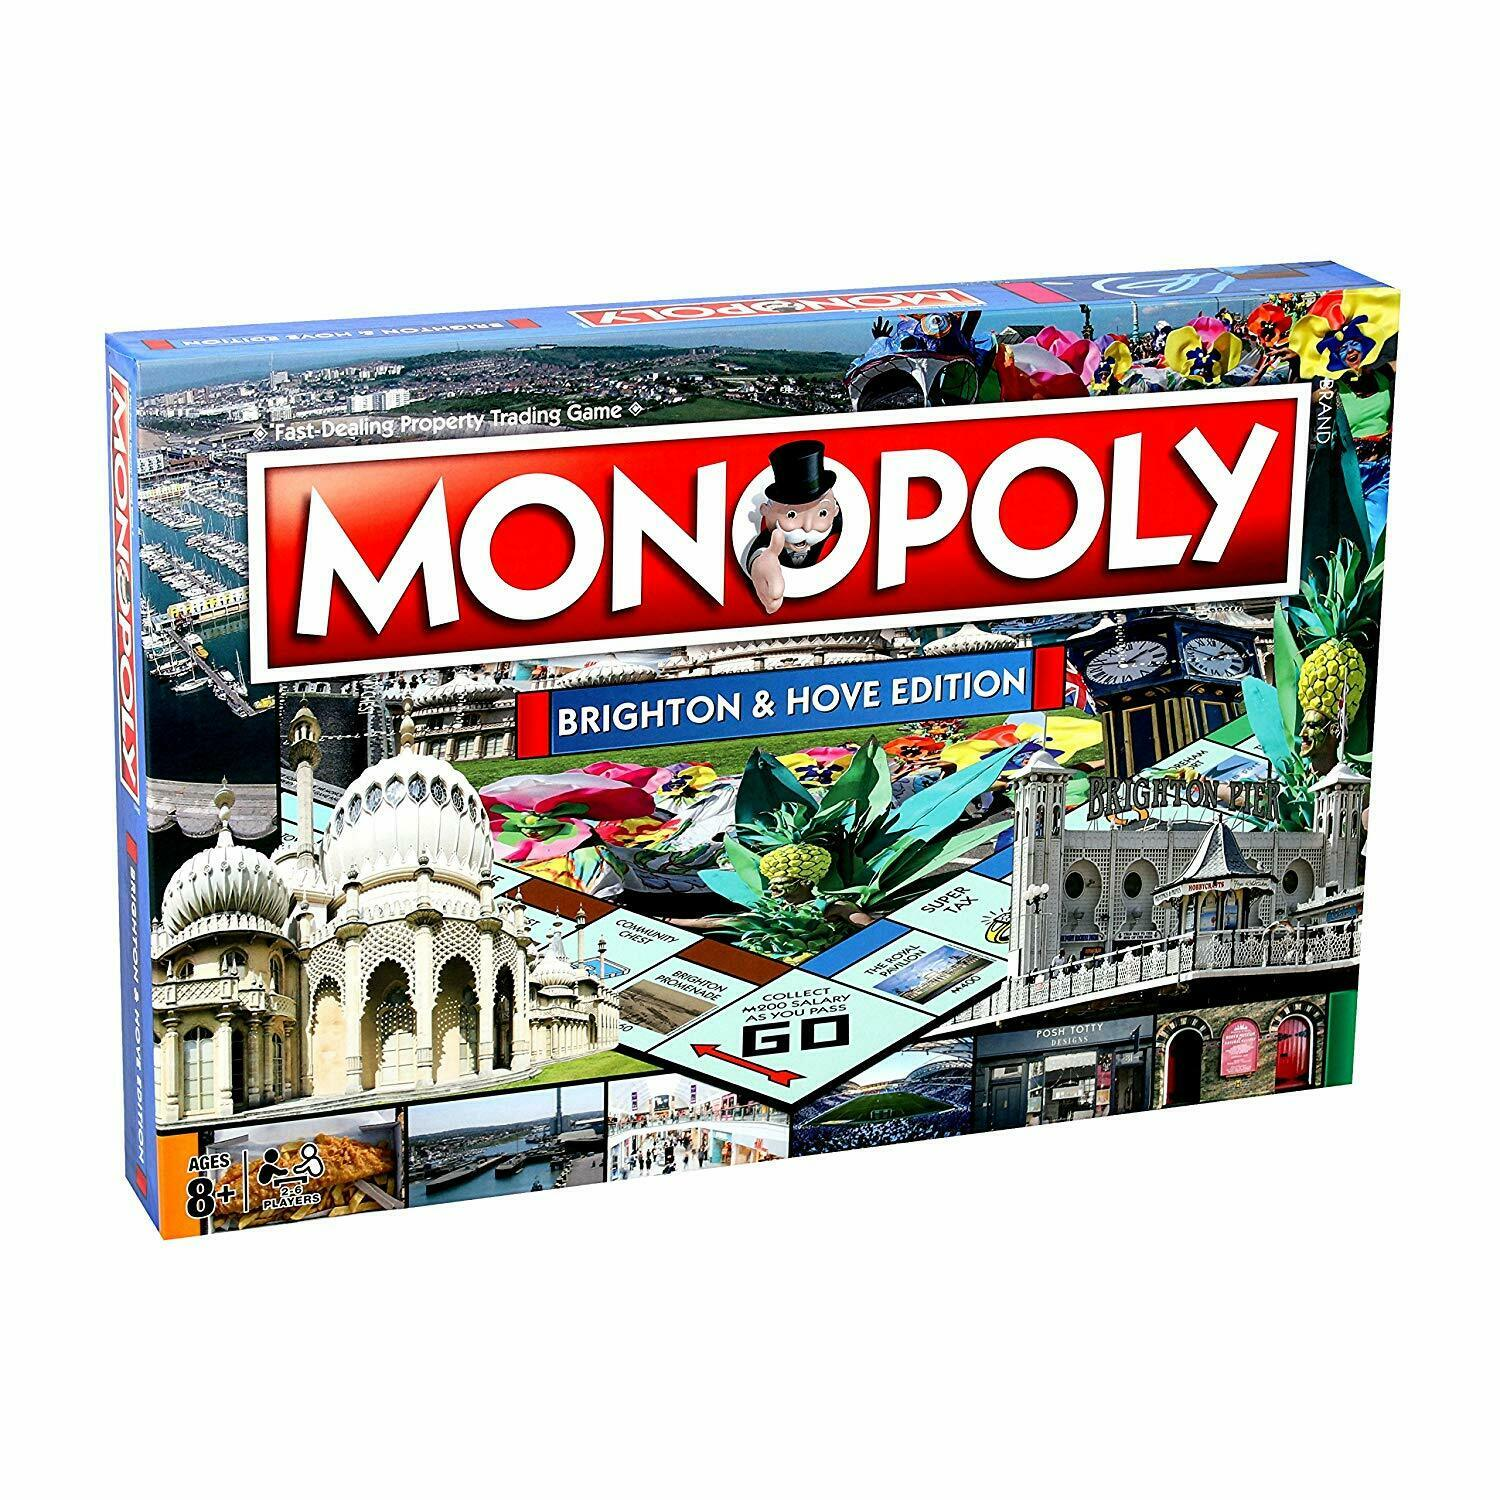 Monopoly - Brighton & Hove Monopoly Board Game - 029704 Limited Edition New